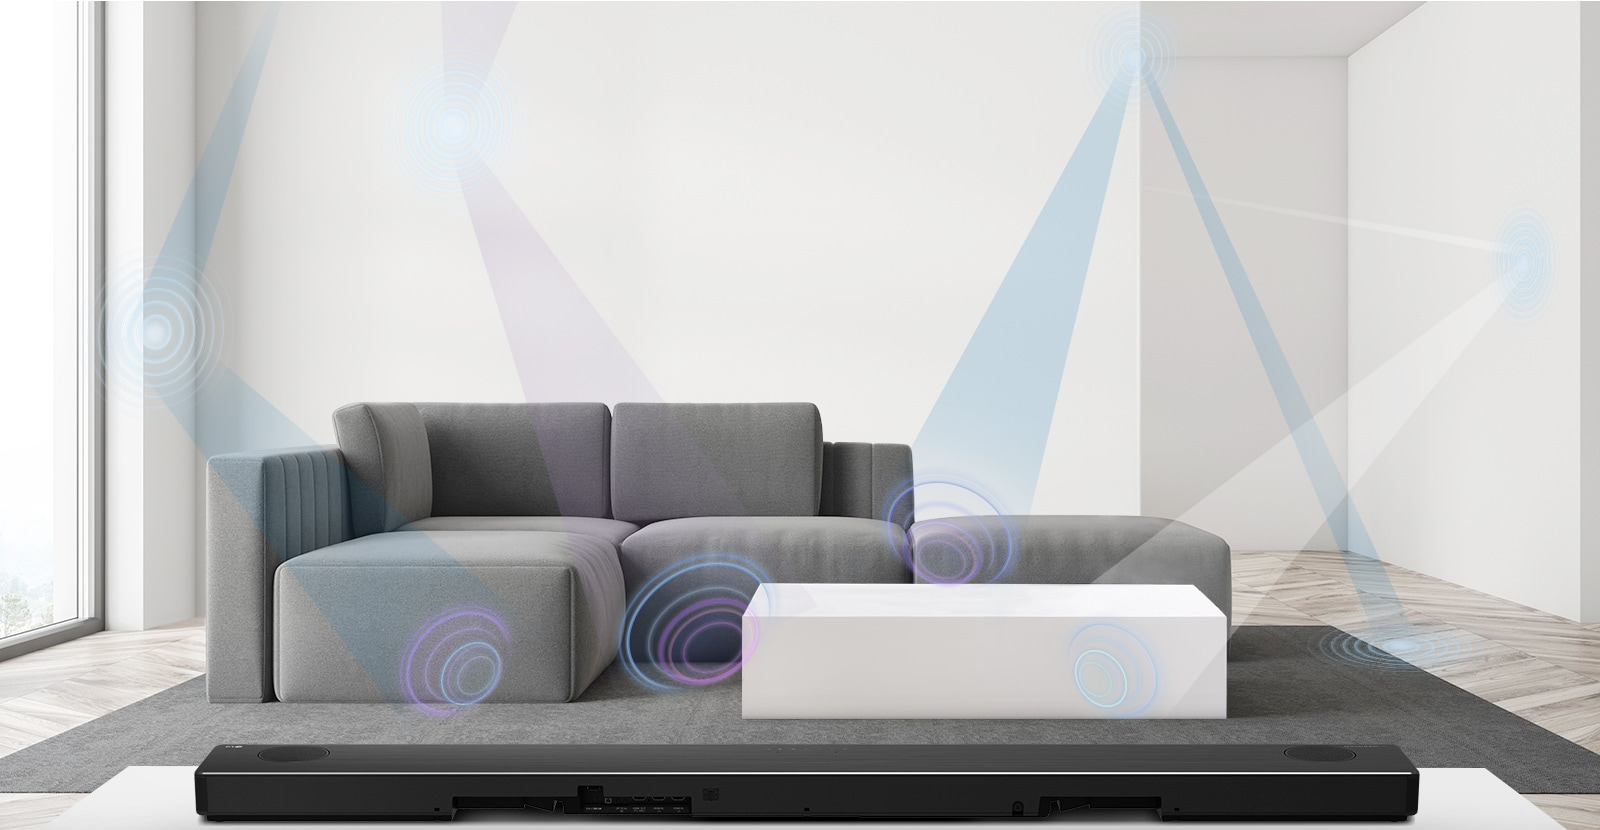 Back of LG Soundbar in living room with gray sofa in the center. Graphics of the wavelength measuring the space are shown.